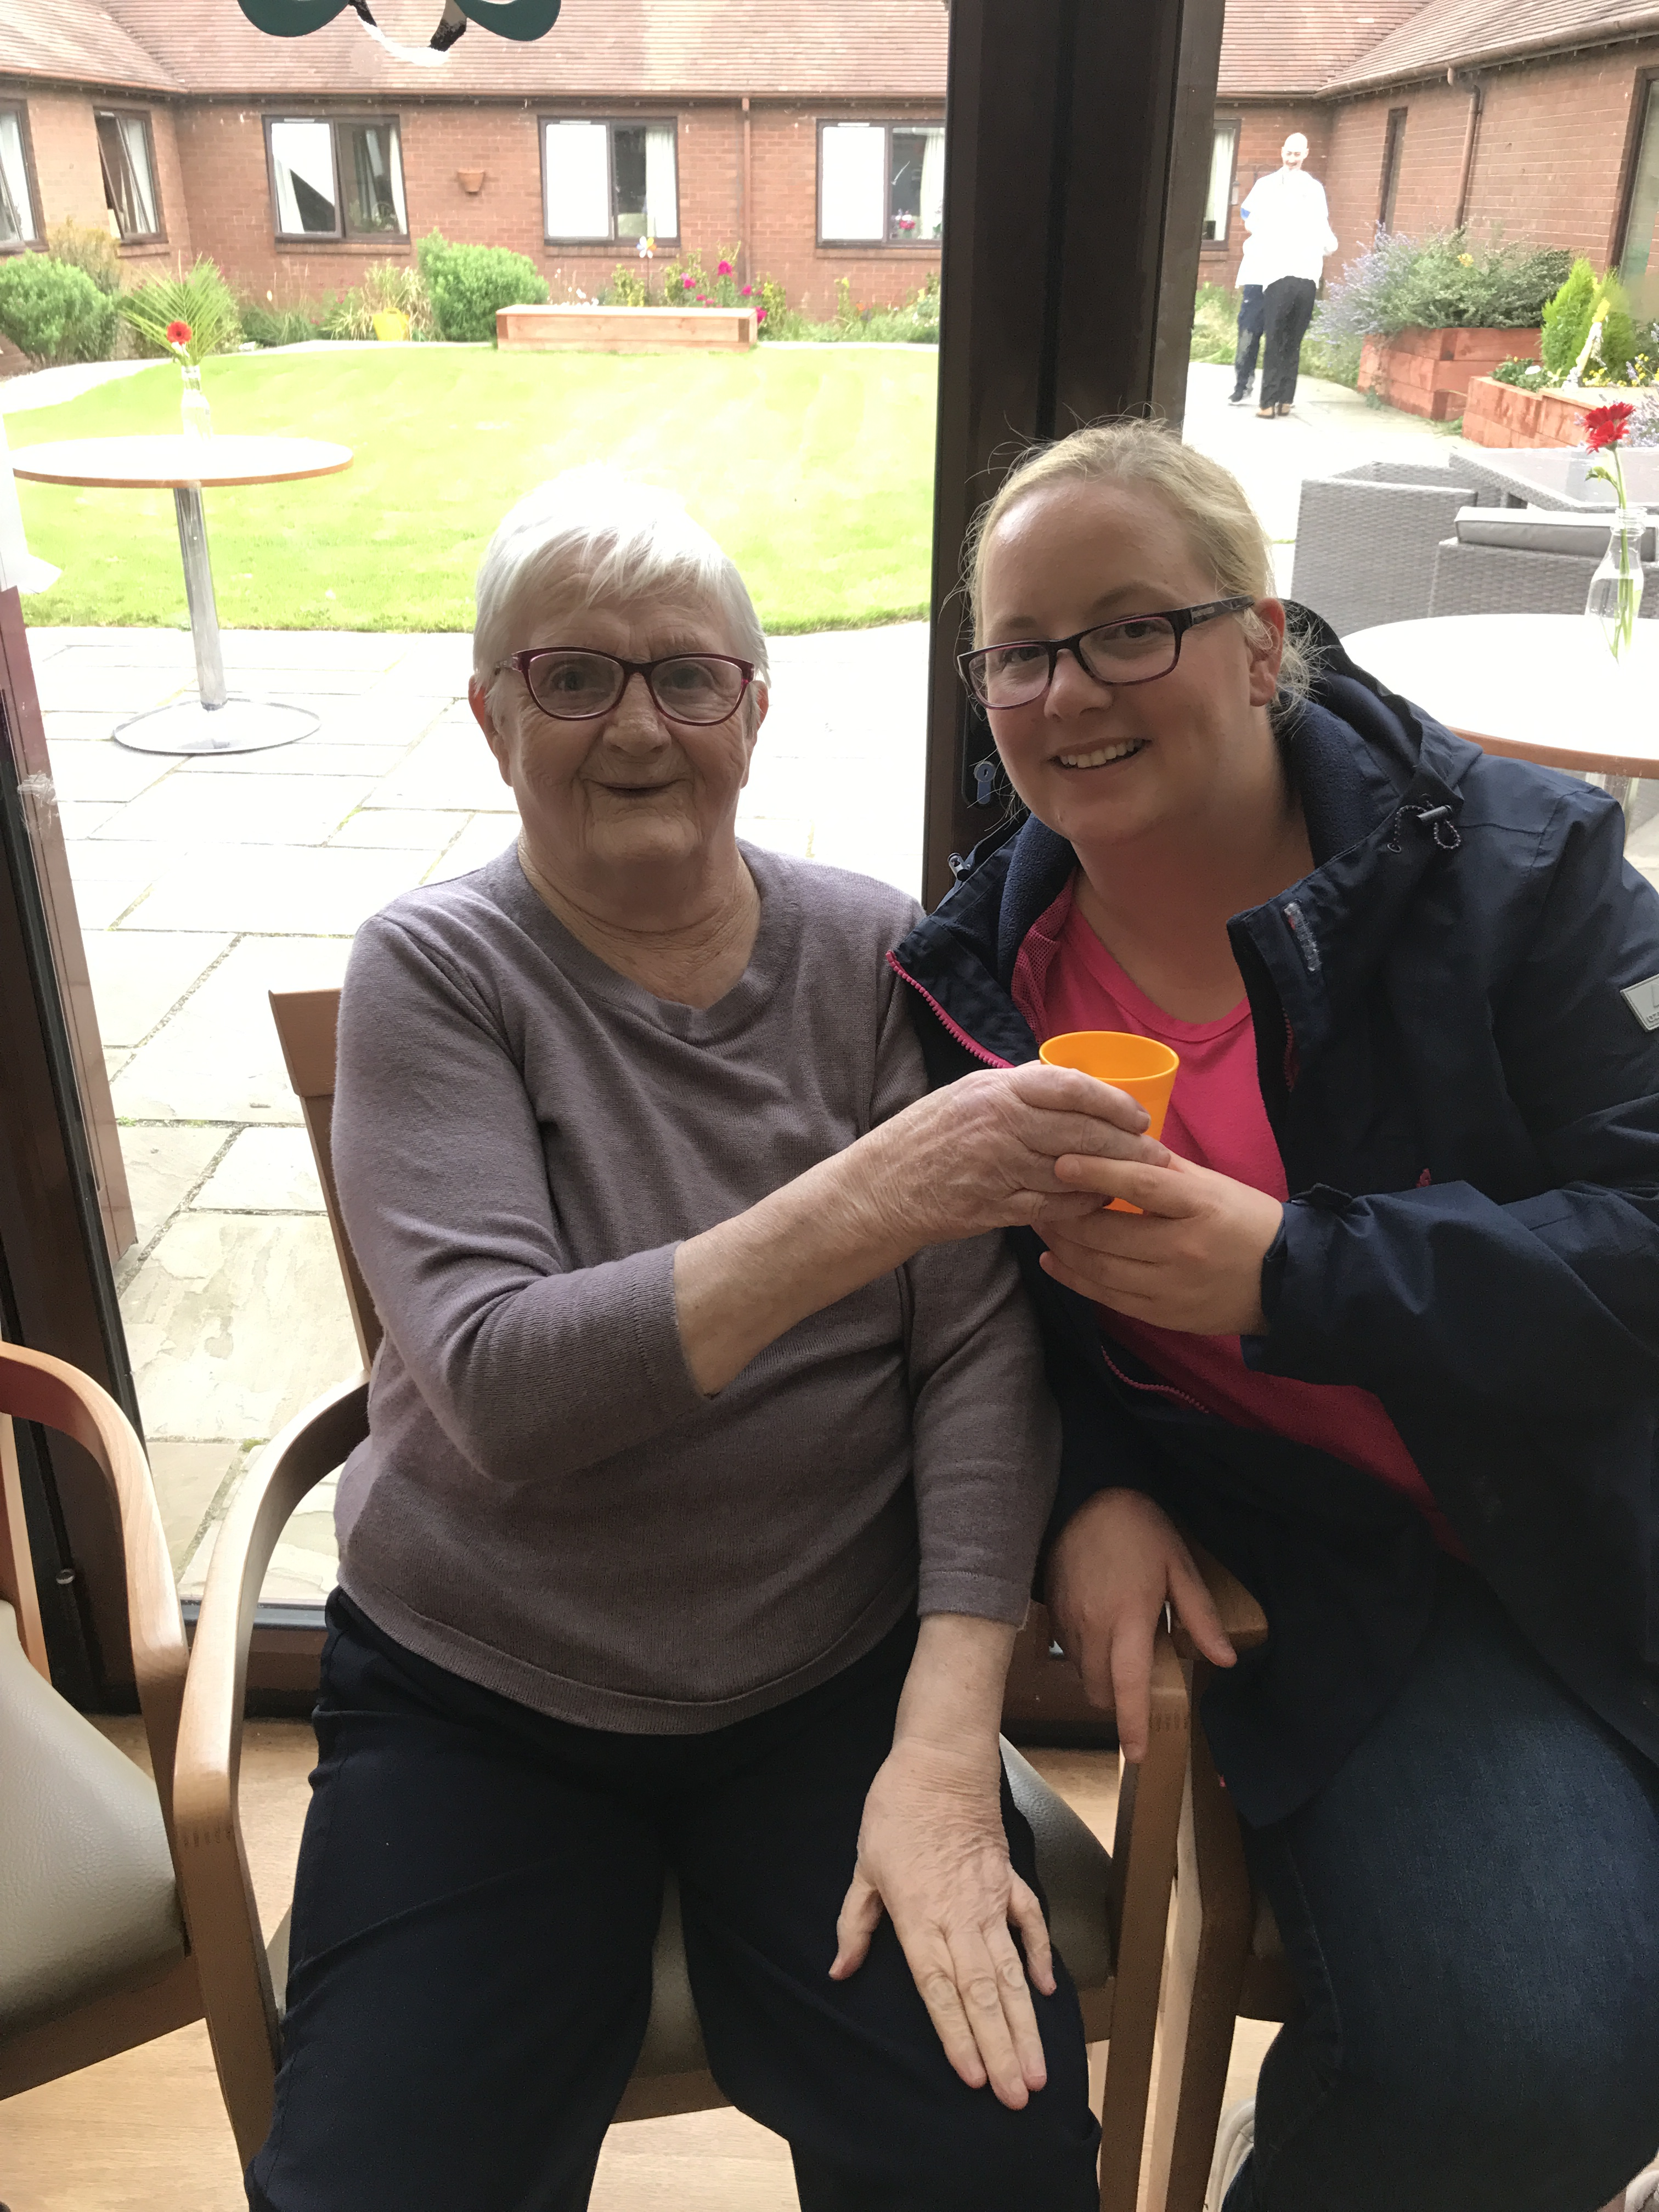 Grace Court Party Aug 17: Key Healthcare is dedicated to caring for elderly residents in safe. We have multiple dementia care homes including our care home middlesbrough, our care home St. Helen and care home saltburn. We excel in monitoring and improving care levels.